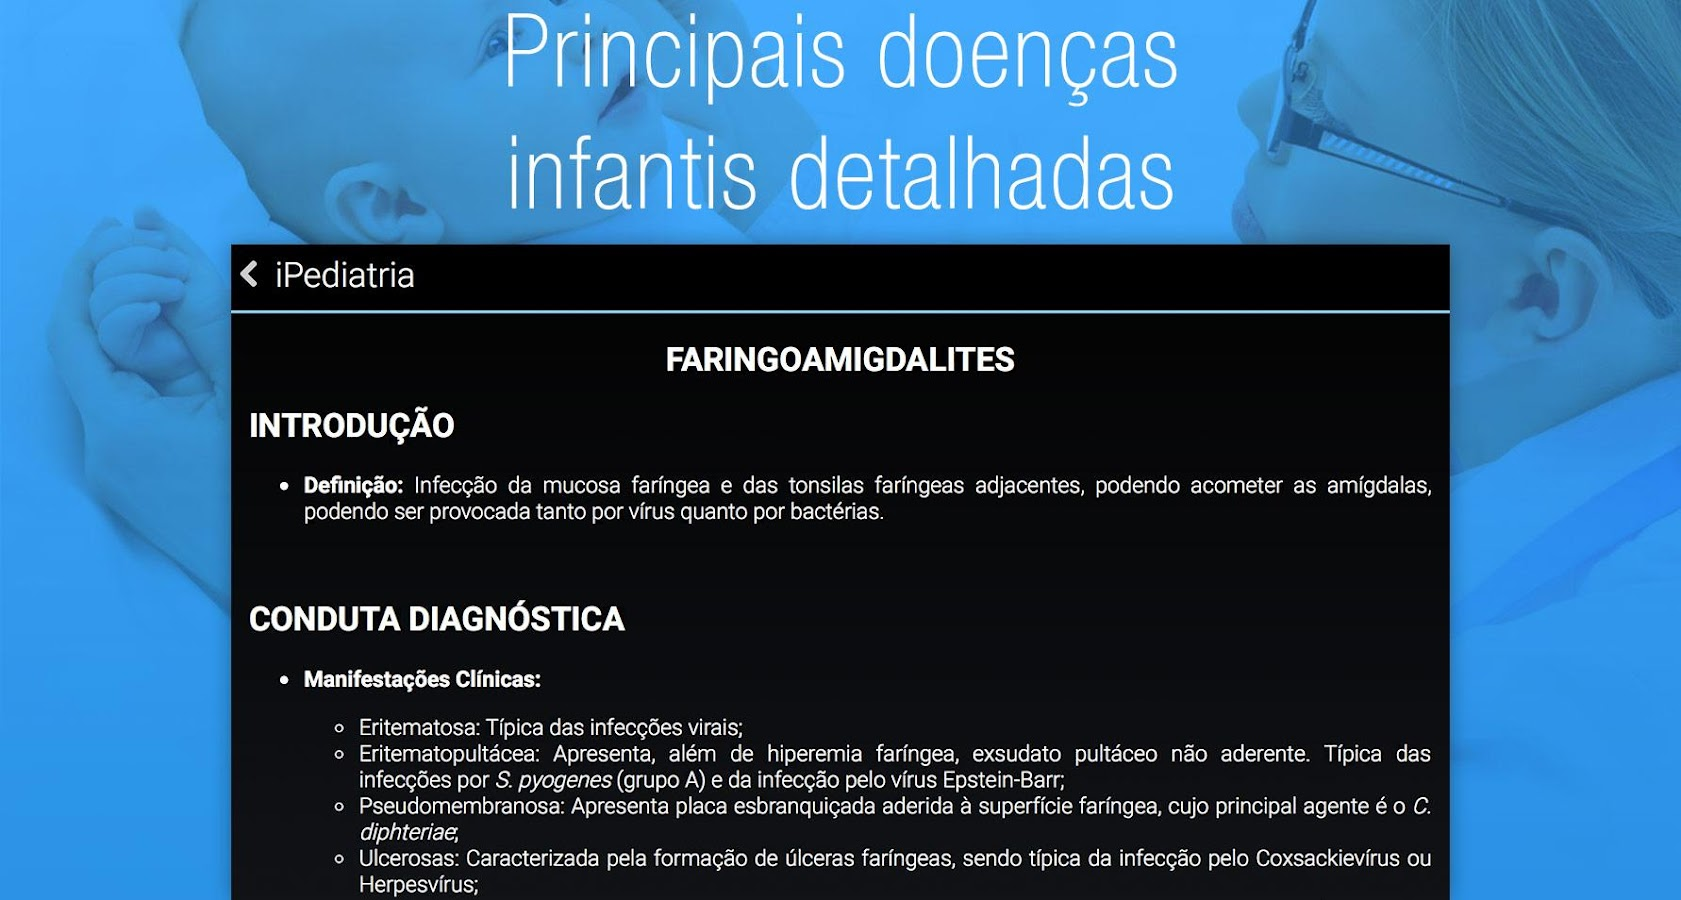 iPediatria, Pediatria Infantil - screenshot